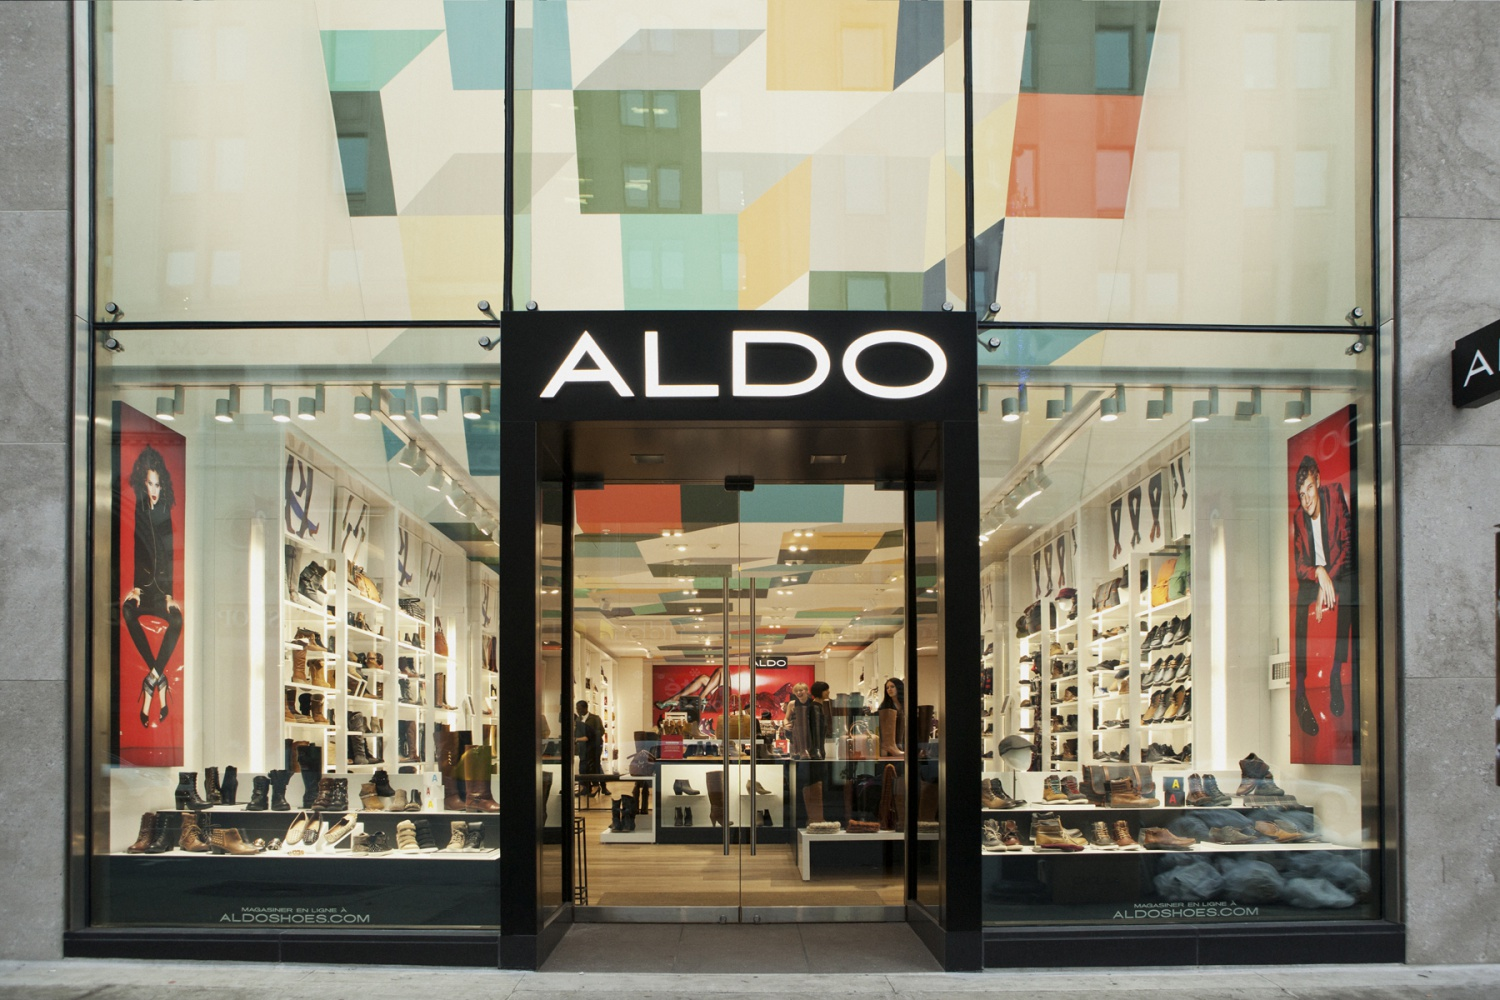 Aldo acquired American shoe manufacturer Camuto Group